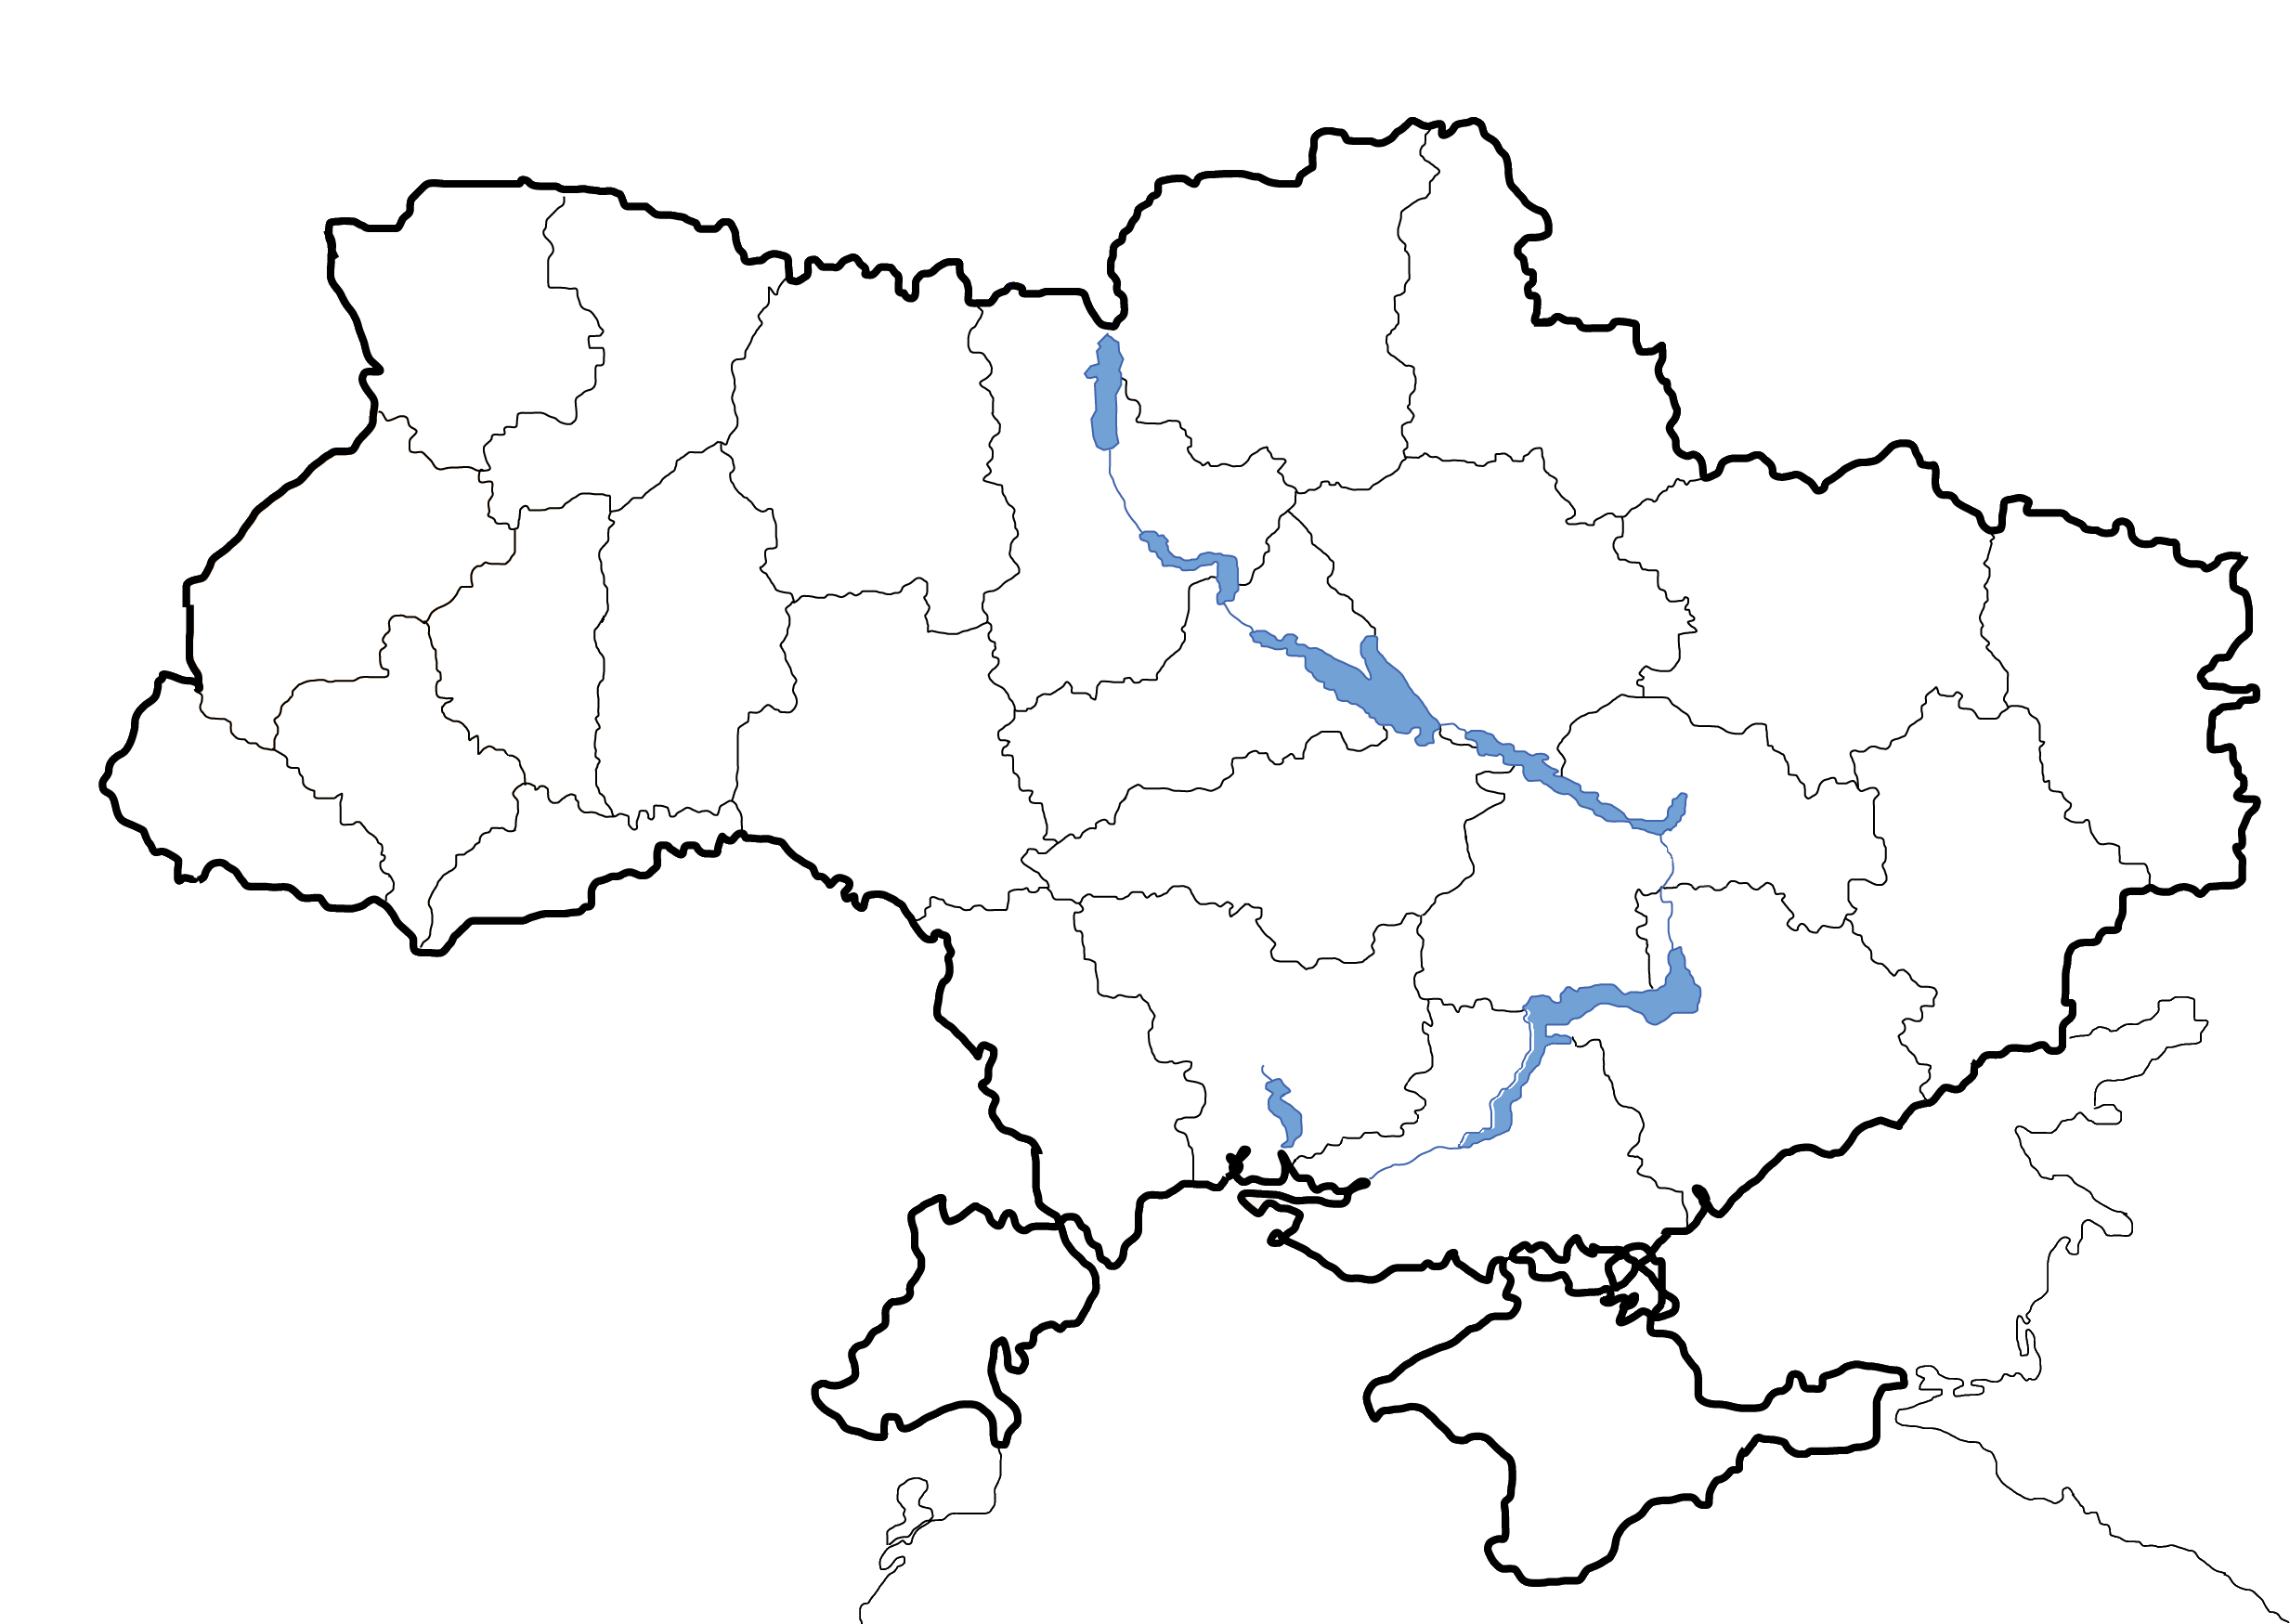 FileMap of Ukraine political simple blankpng  Wikimedia Commons